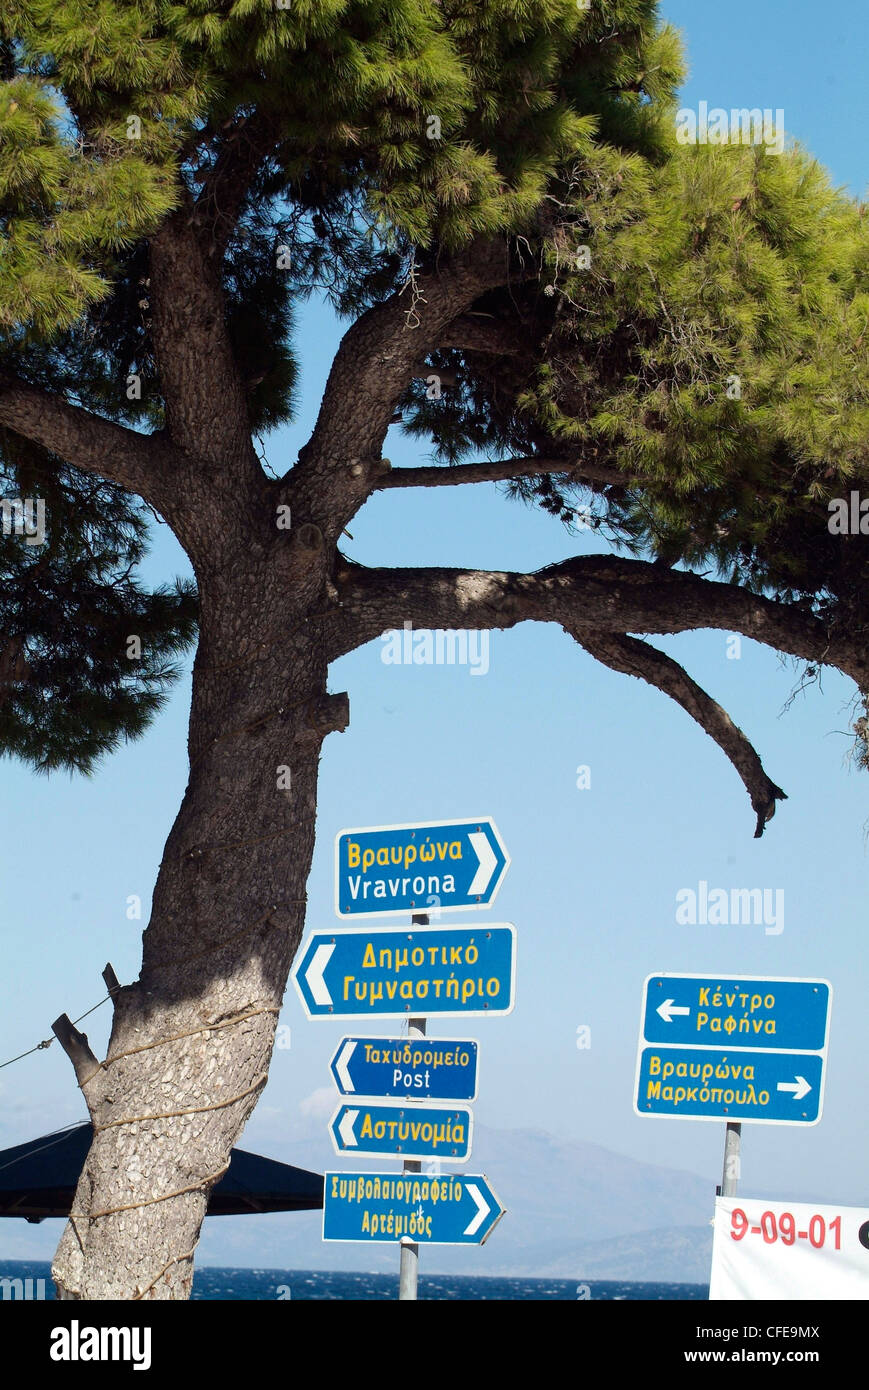 GREECE Athens East Coast  Loutsa Bay  road sign in Greek and Latin script - Stock Image